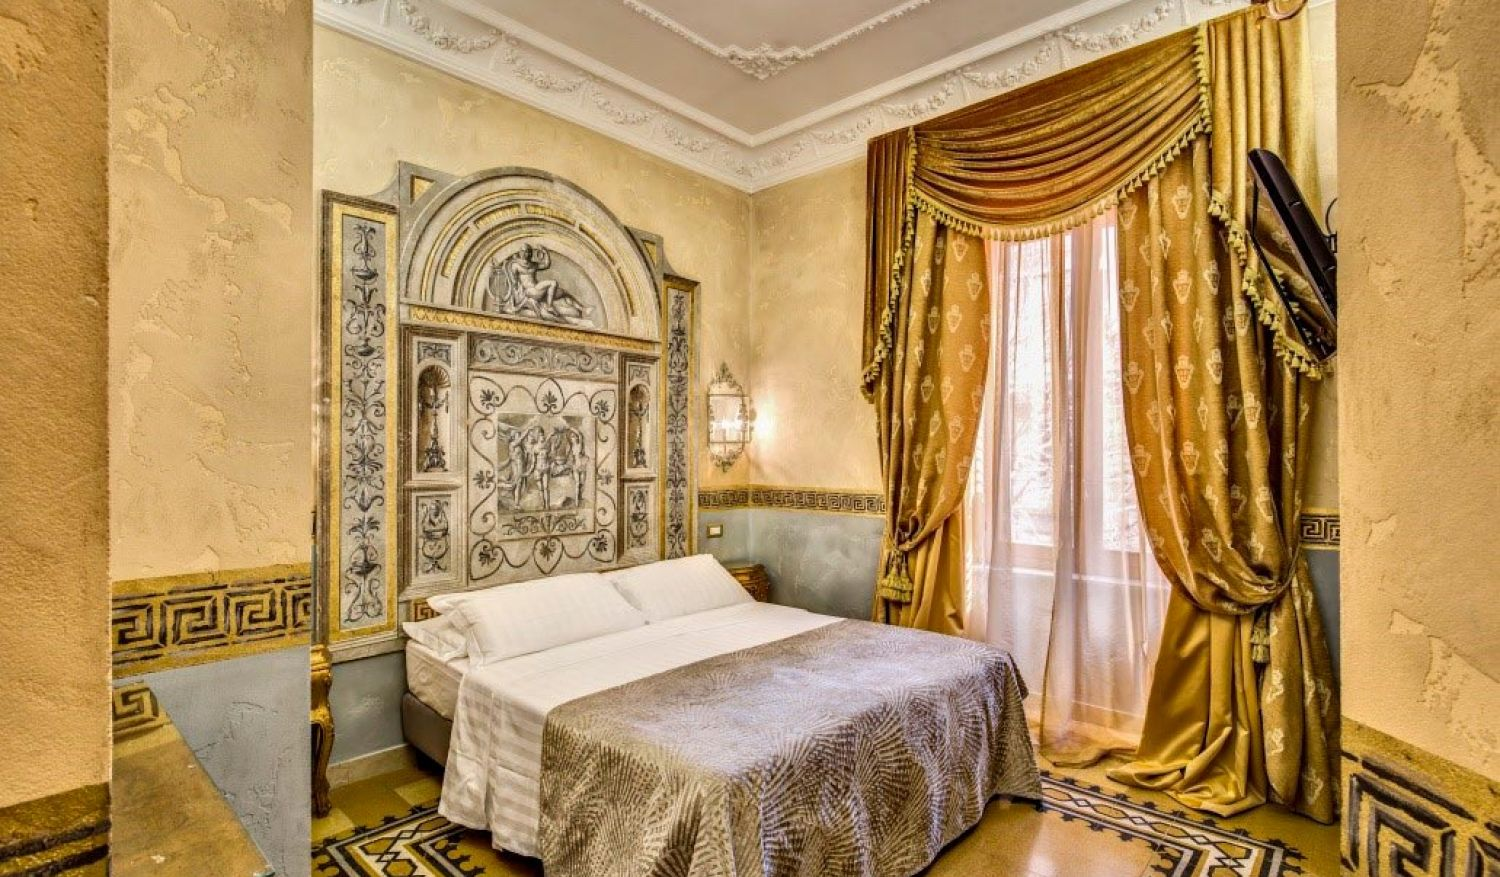 The cozy rooms of our hotel in central Rome